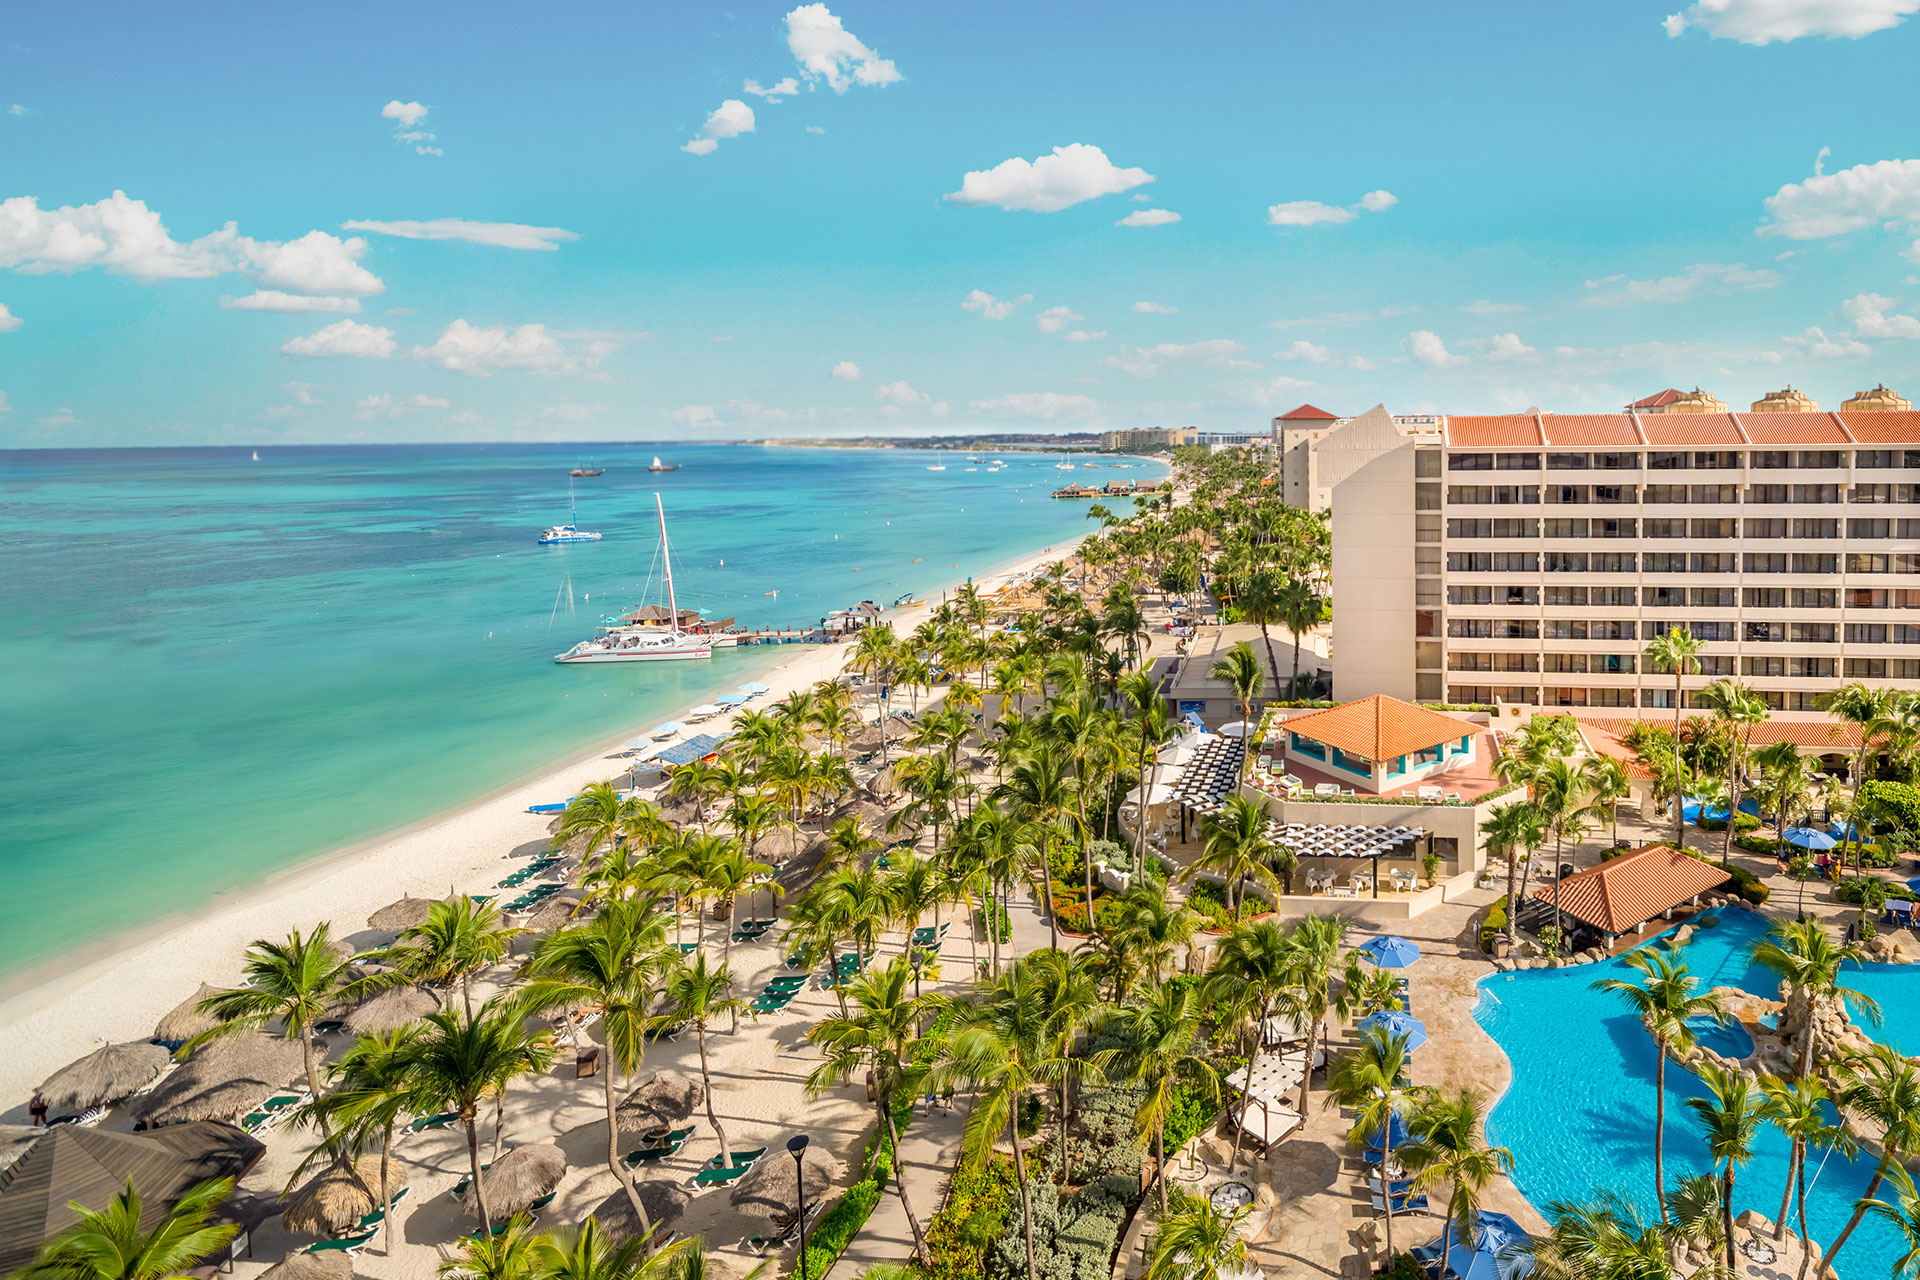 10 Last Minute All Inclusive Resort Deals for 2019